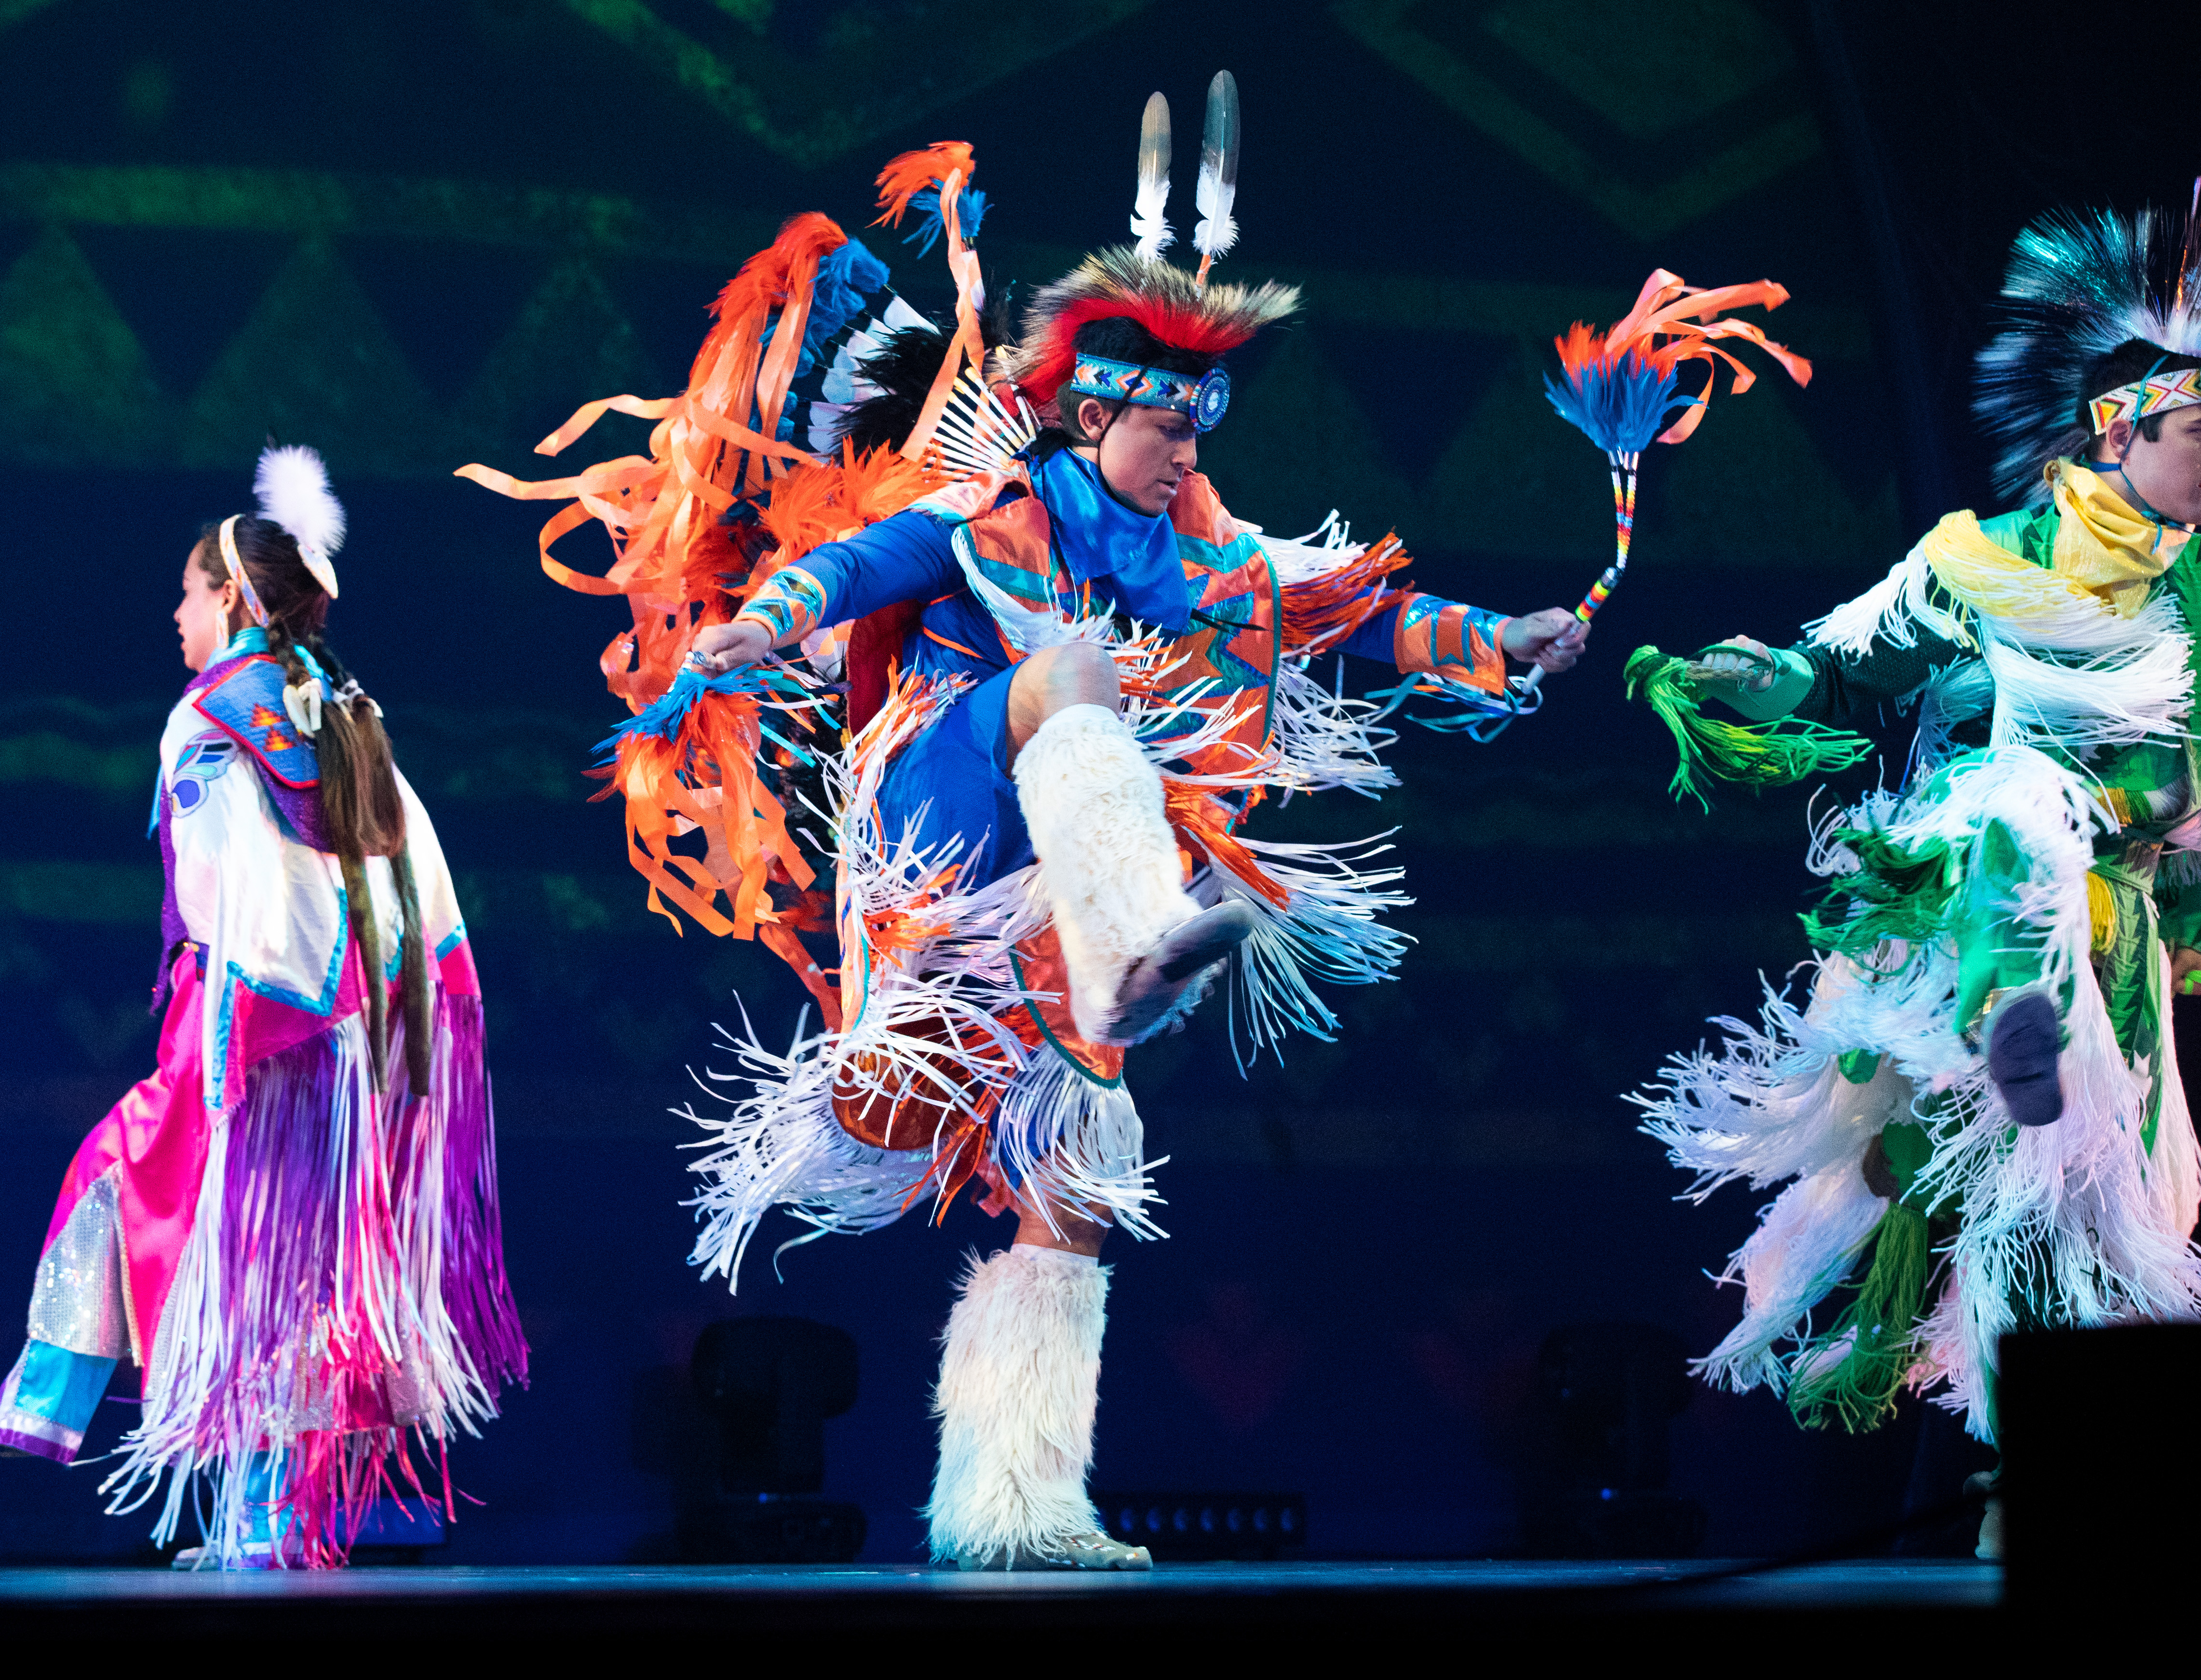 1905-33 7704  1905-33 China Spectacular Preview  BYU China Spectacular - Preview Performances at BYU.  May 10, 2019  Photo by Jaren Wilkey/BYU  © BYU PHOTO 2019 All Rights Reserved photo@byu.edu  (801)422-7322